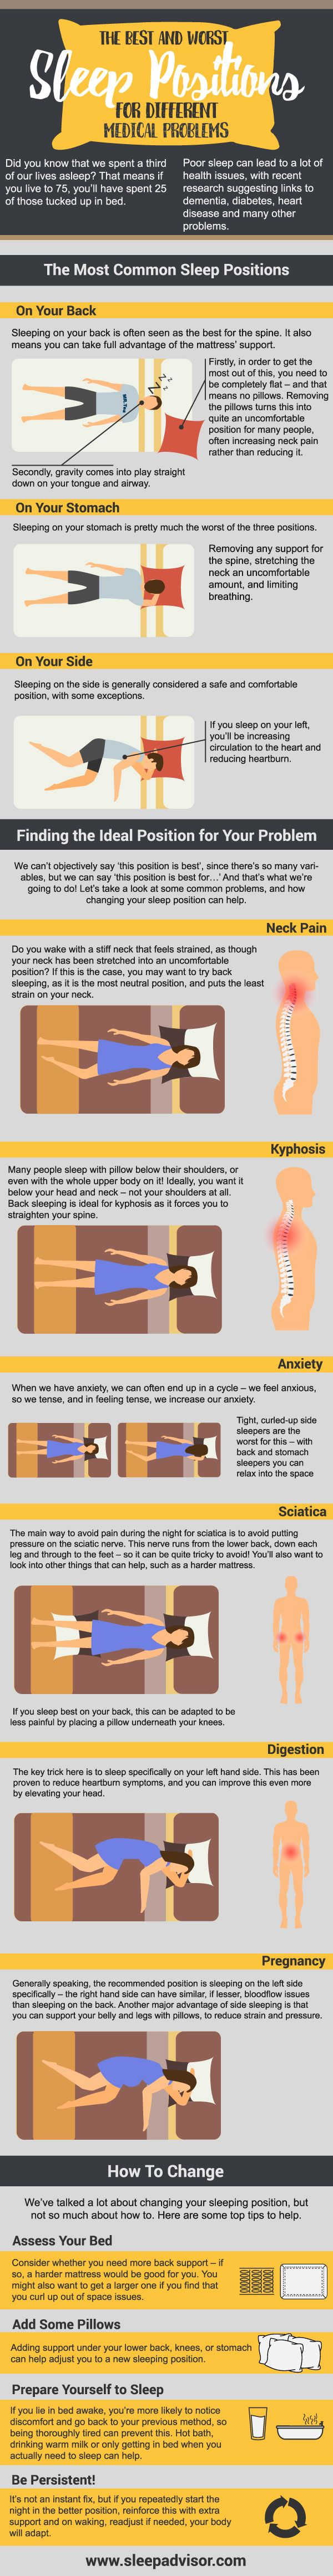 The Best and Worst Sleep Positions for Different Medical Problems